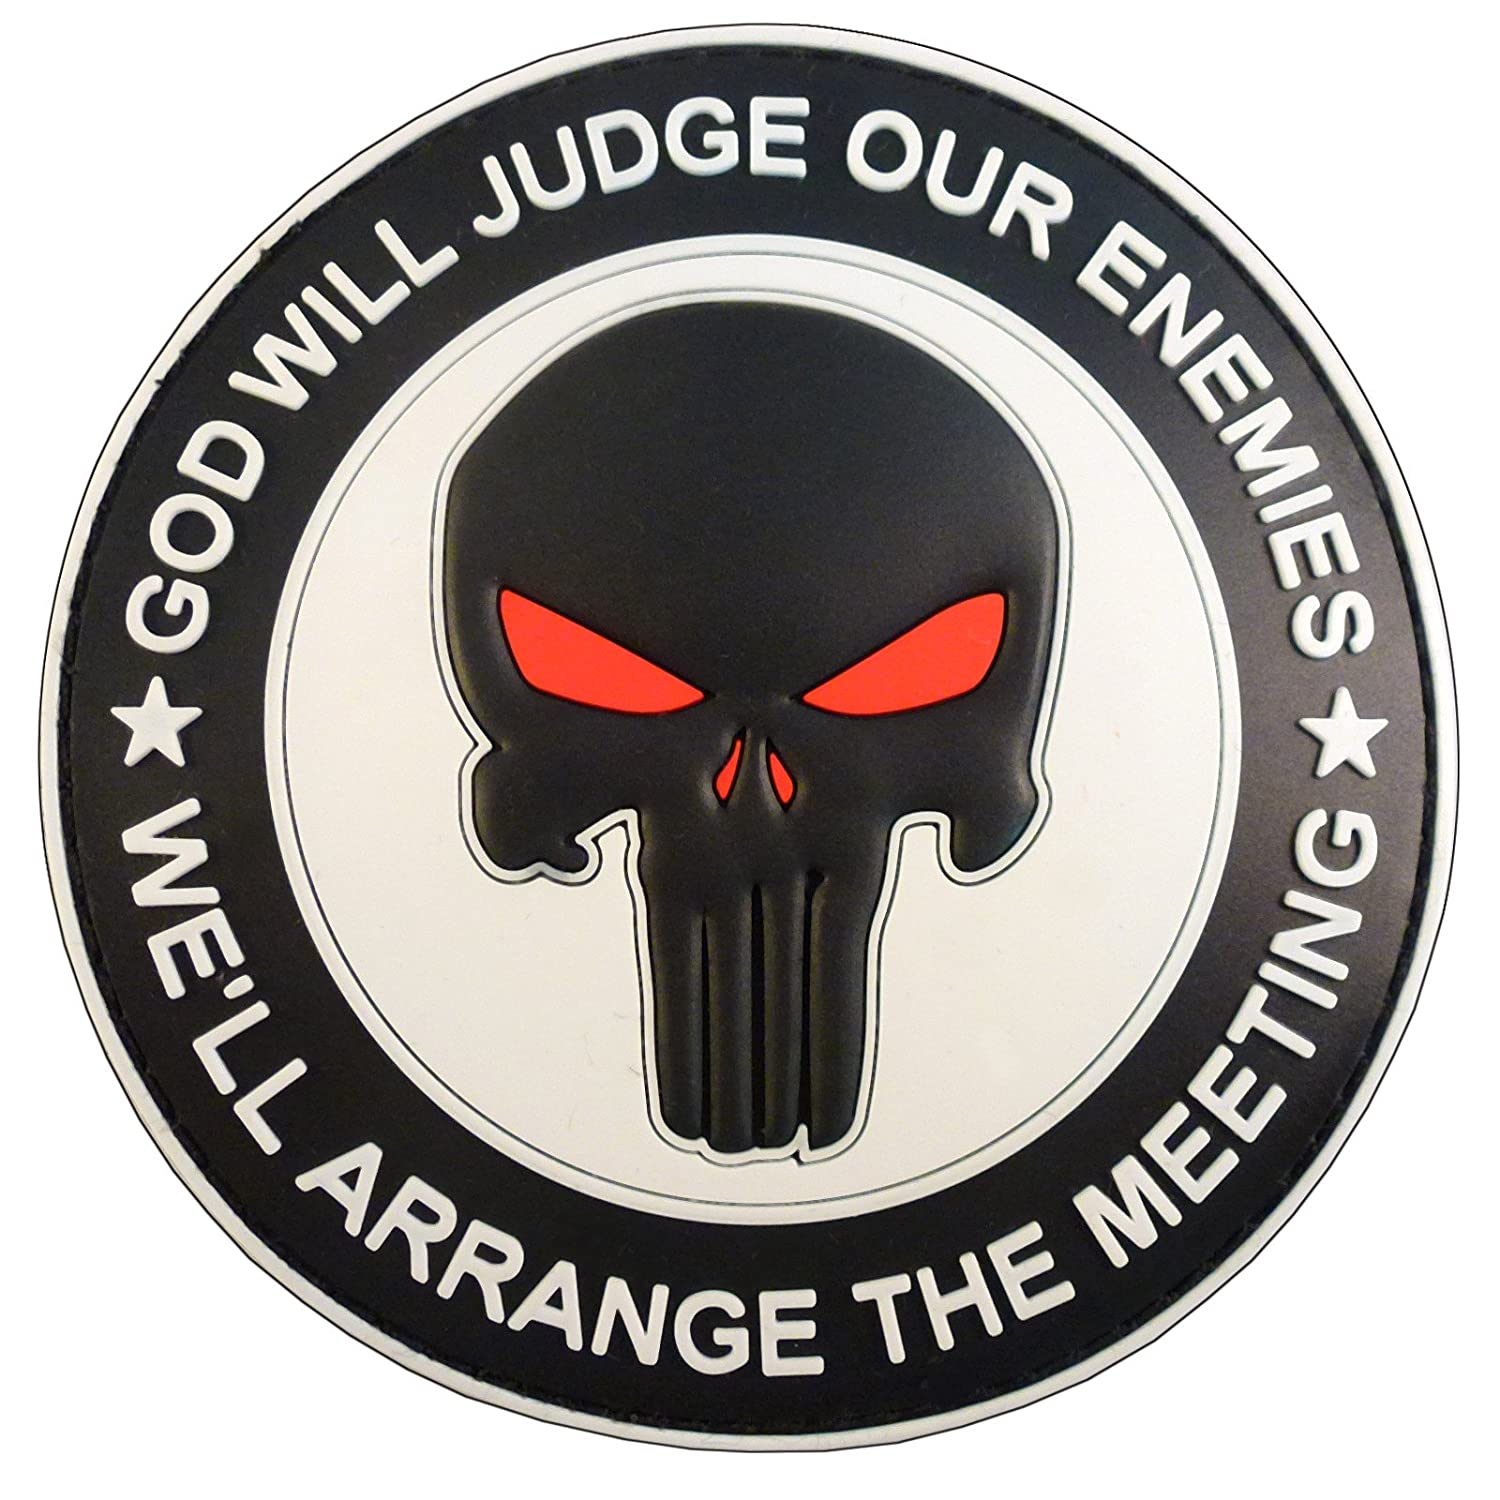 GOD WILL JUDGE OUR ENEMIES Punisher DEVGRU Navy Seals PVC Hook&Loop Patch 2AFTER1 P.1718.4.V